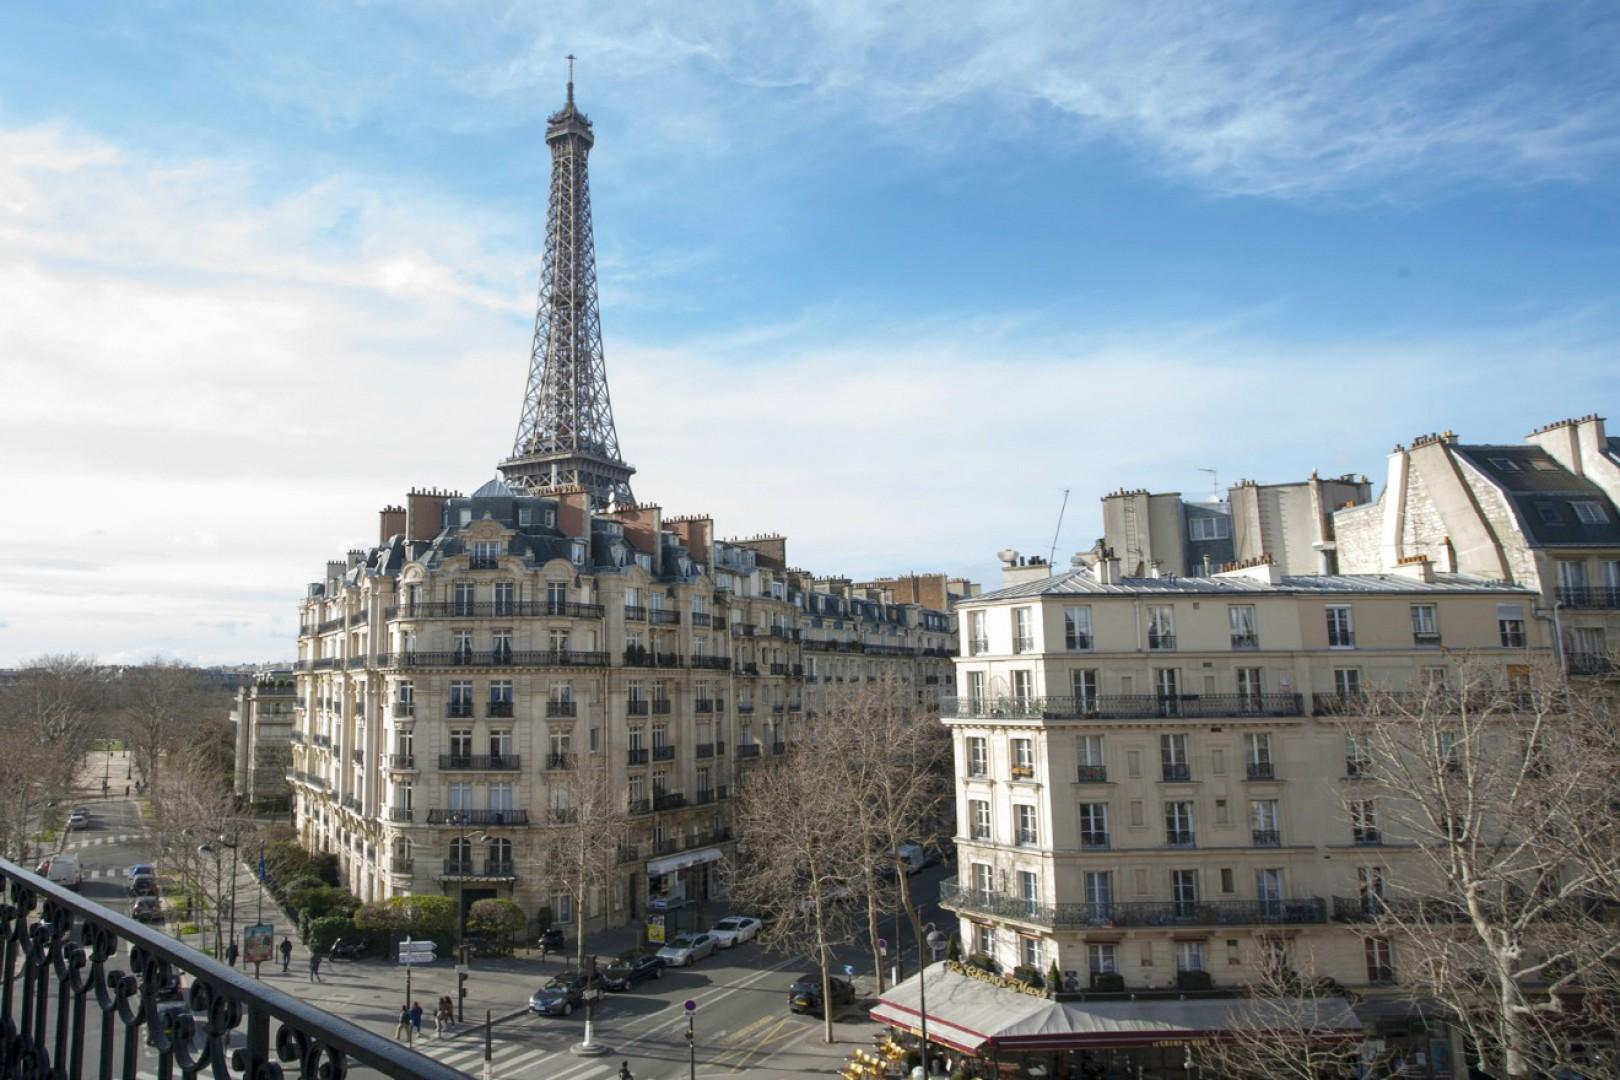 Look at this view of the Eiffel Tower from bedroom 1!